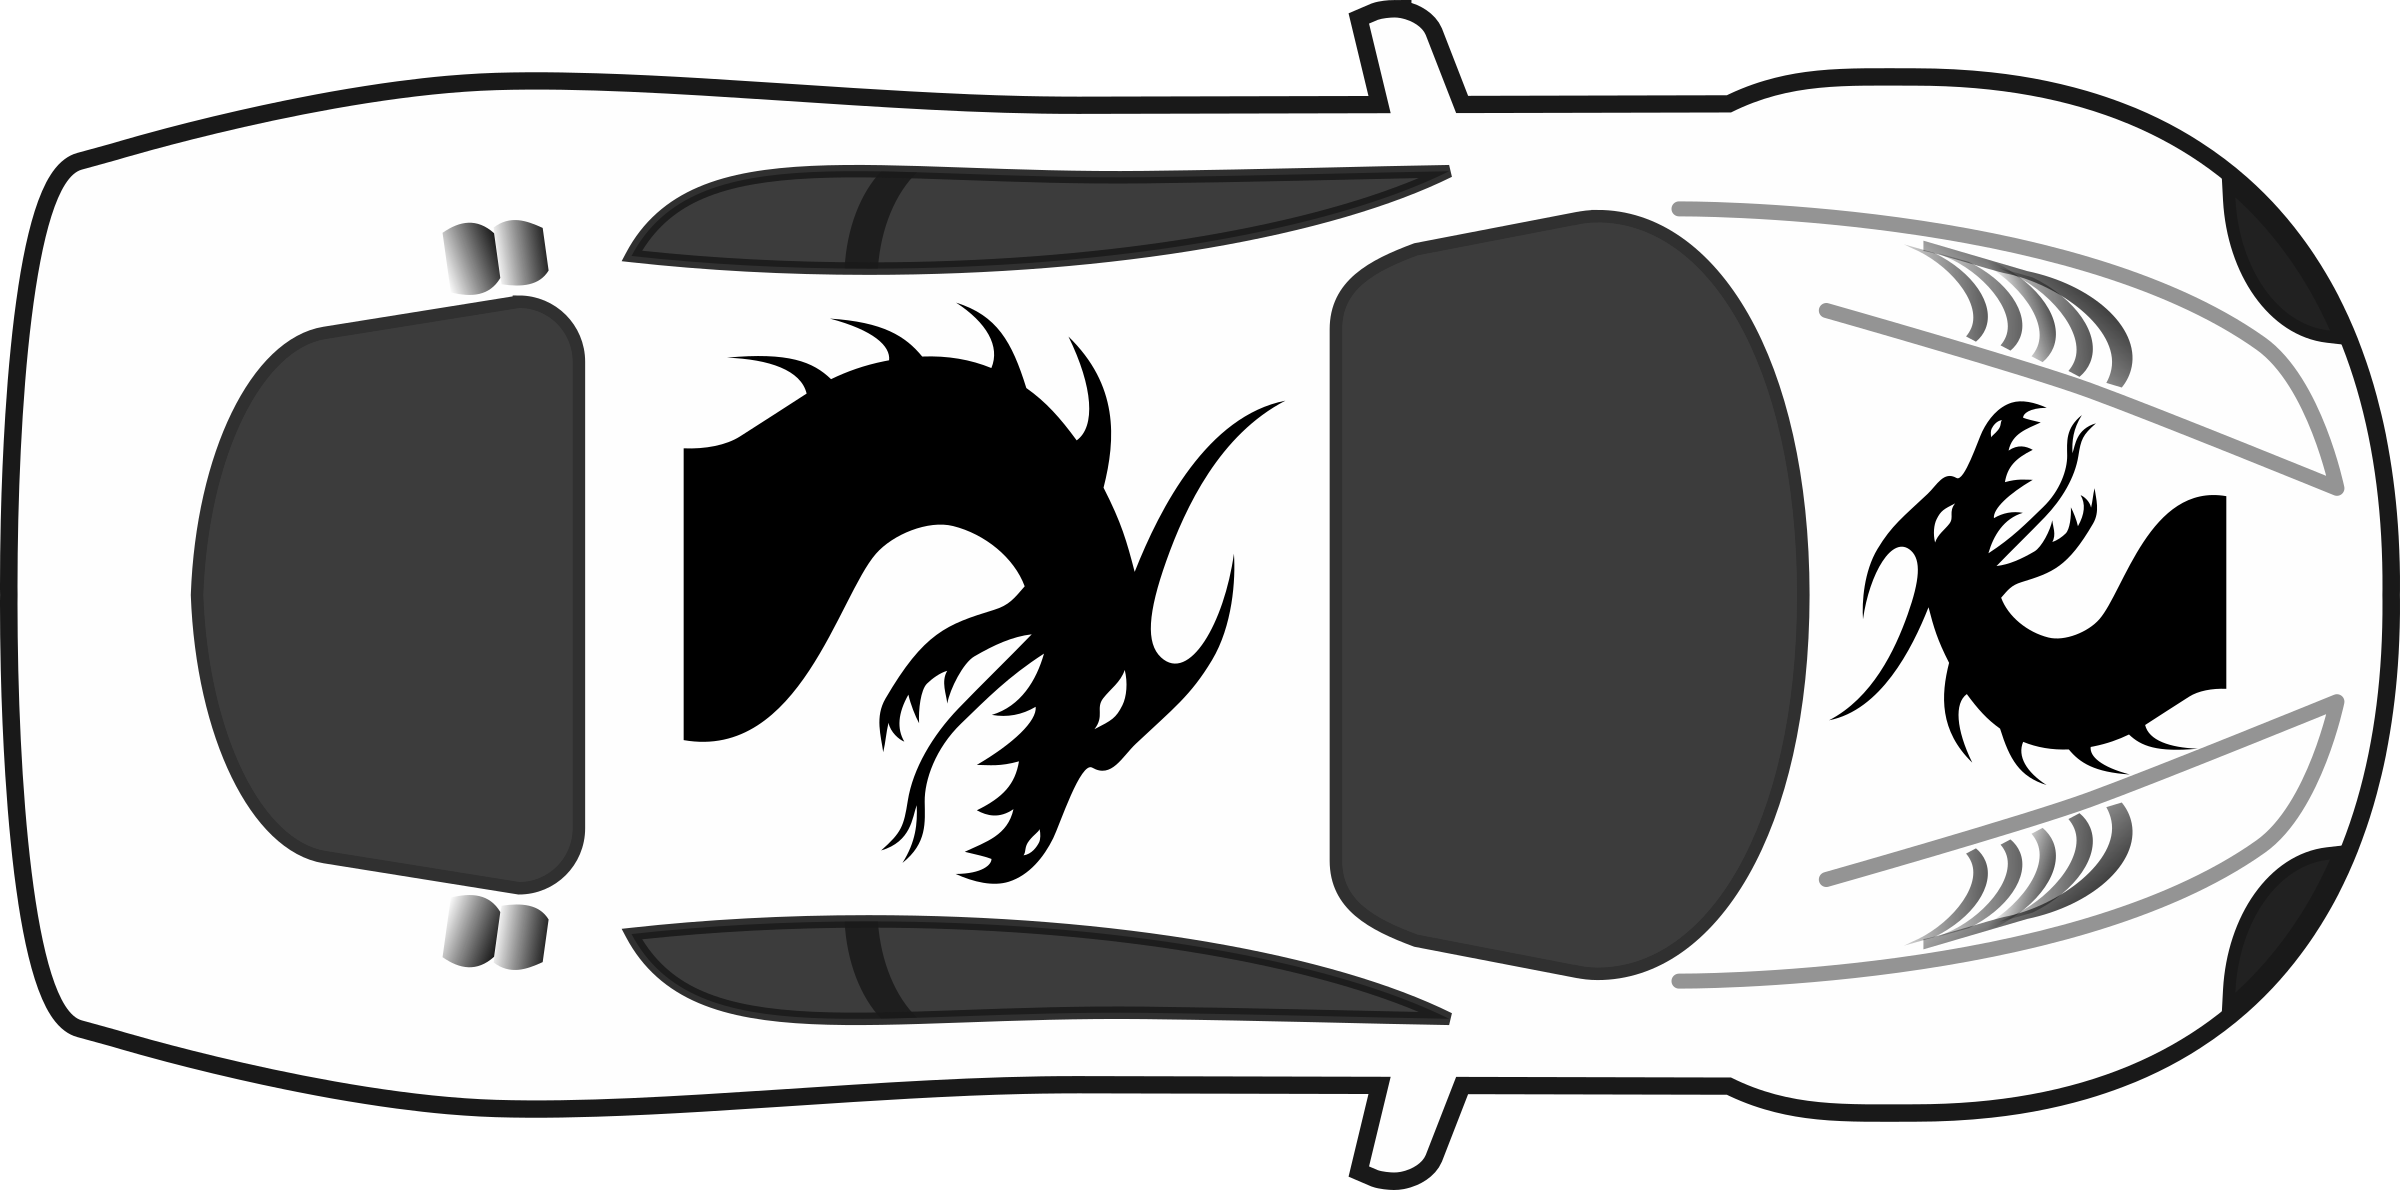 Kind clipart top view. Dragon paint job on